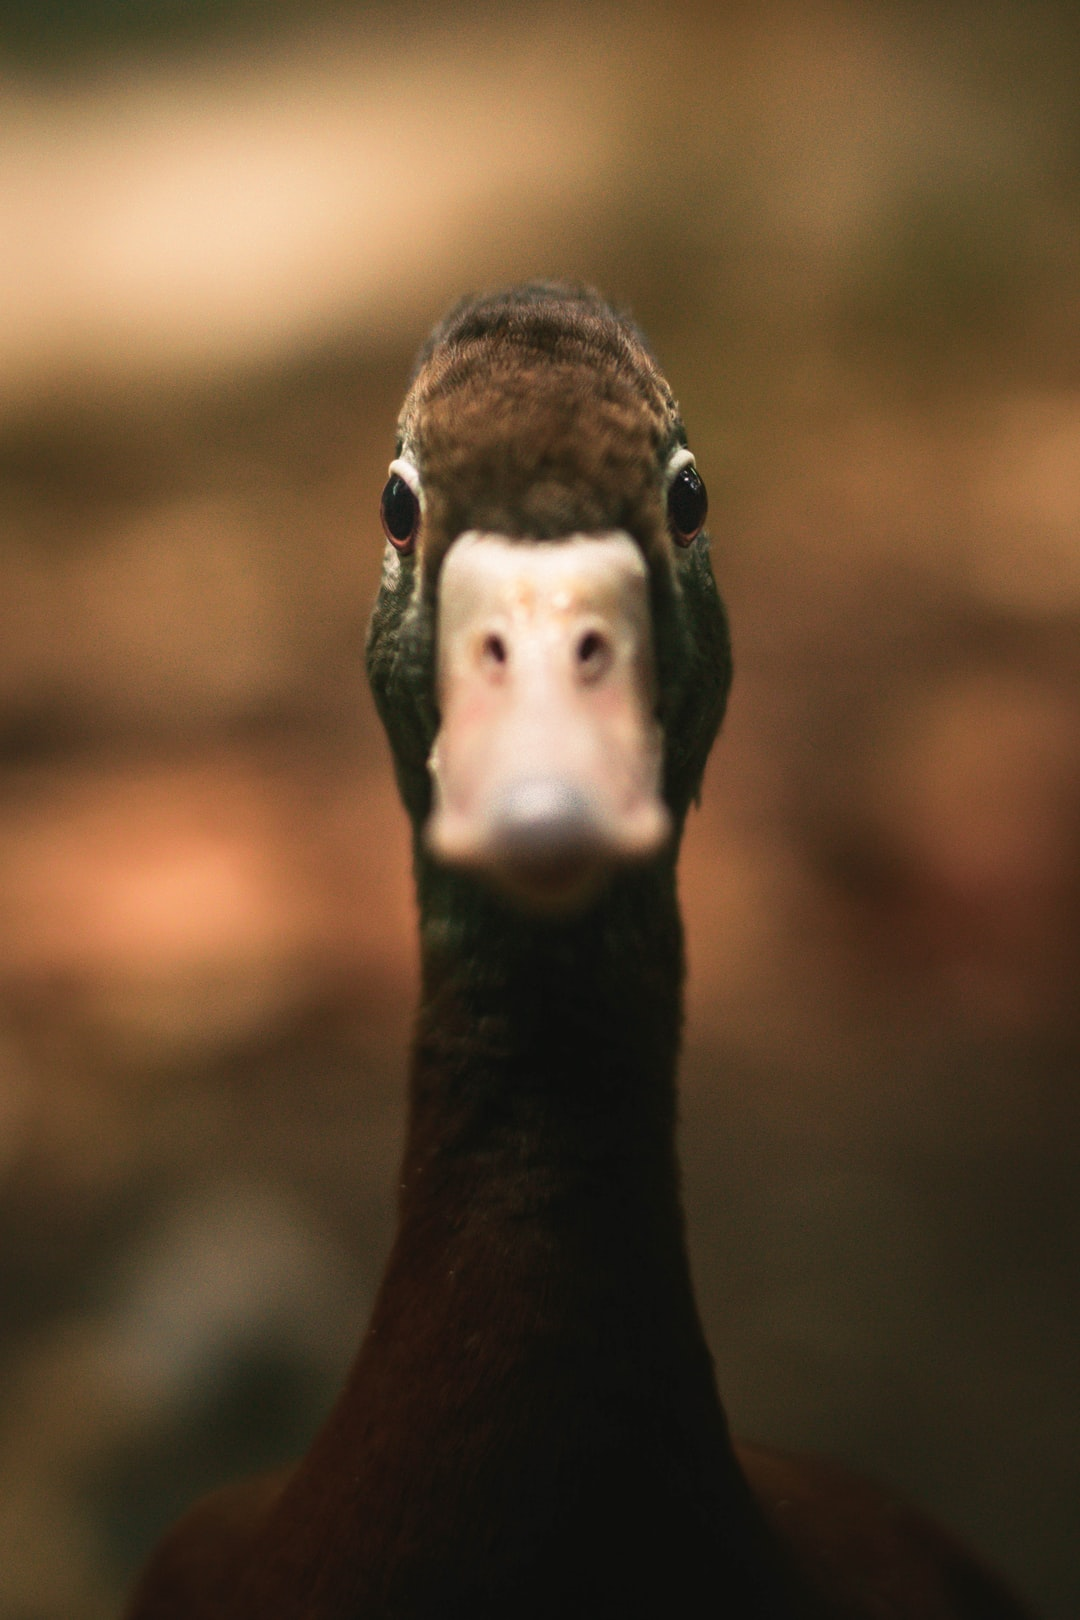 Anatidaephobia is defined as a pervasive, irrational fear that one is being watched by a duck. The anatidaephobic individual fears that no matter where they are or what they are doing, a duck watches.